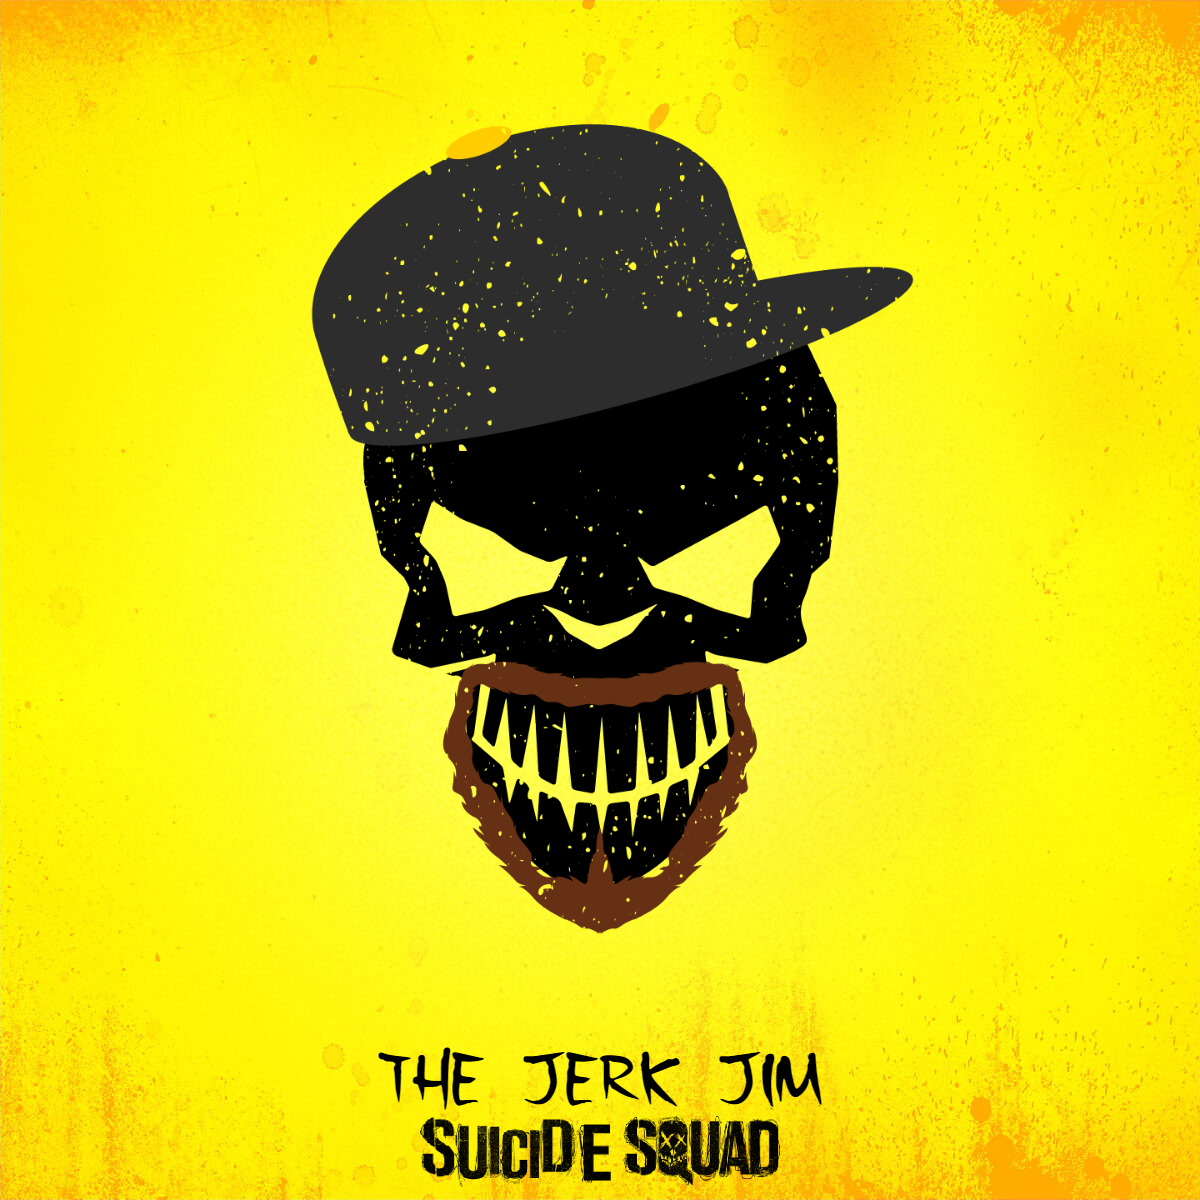 Suicide Squad Style Poster   Jim